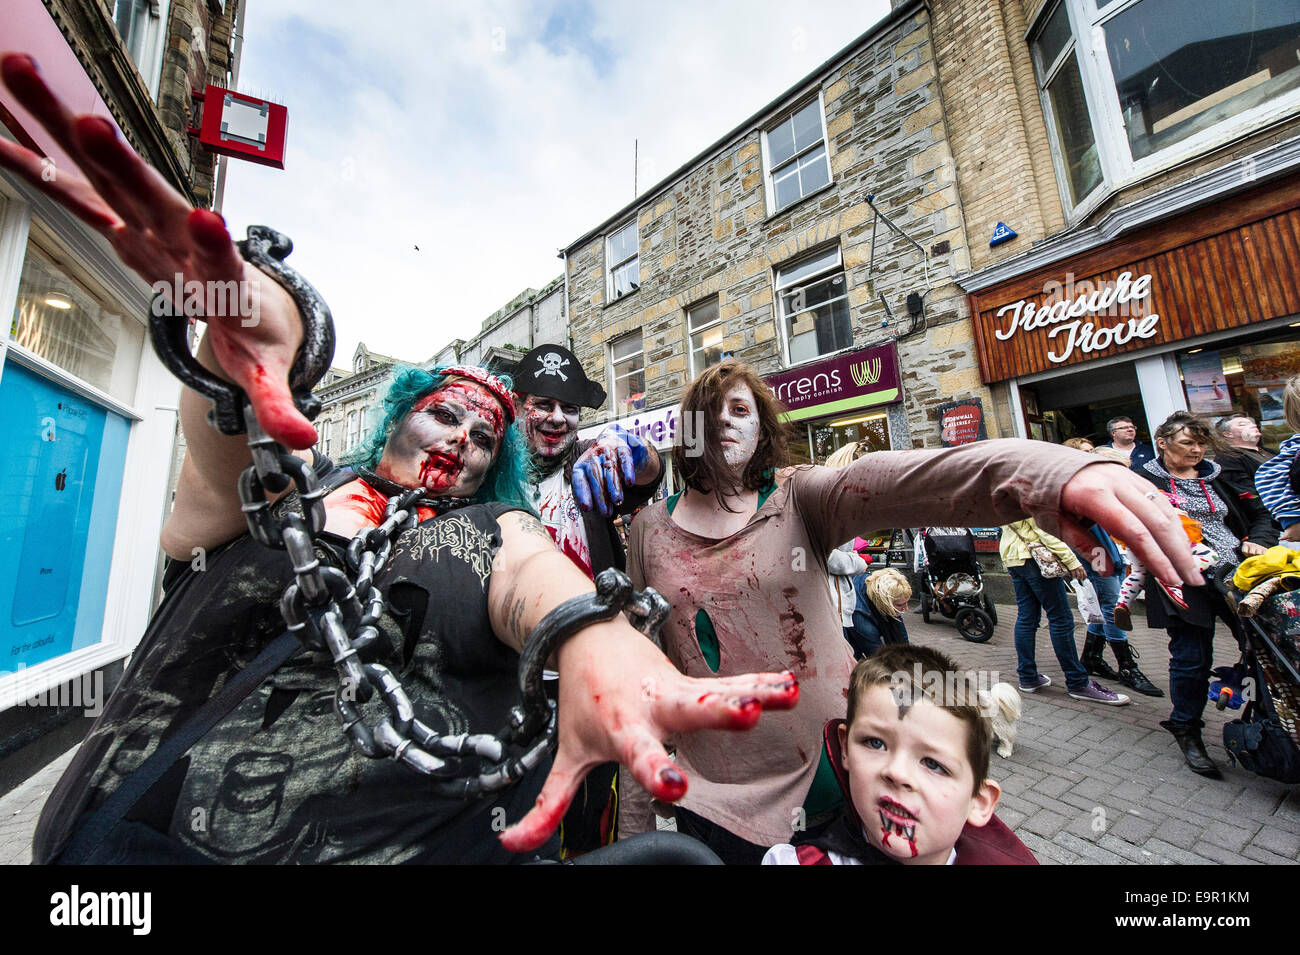 Newquay, Cornwall. 31st October 204.  Blood spattered Cornish zombies parade along Newquay High Street. Credit: - Stock Image